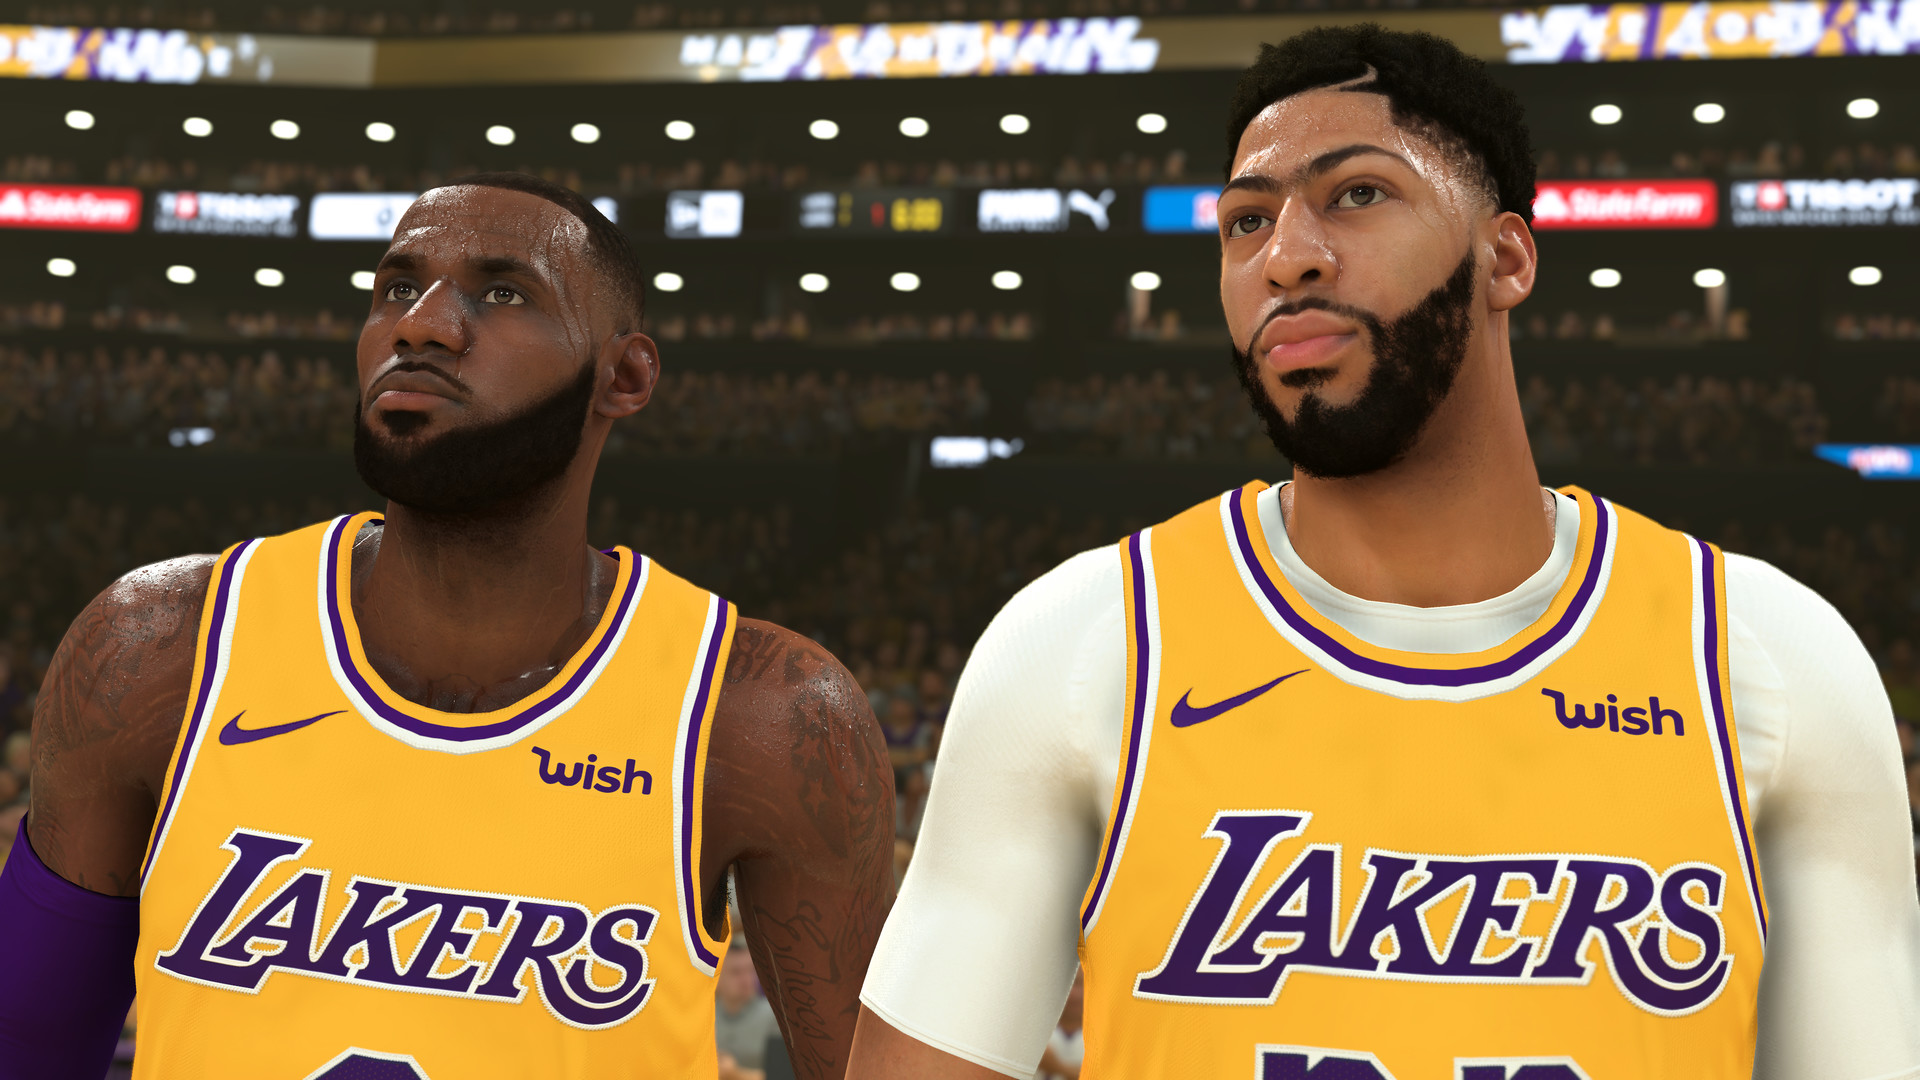 NBA 2K20 and Borderlands 3 Headline the PlayStation Store's Top Downloads for the Month of September 2019